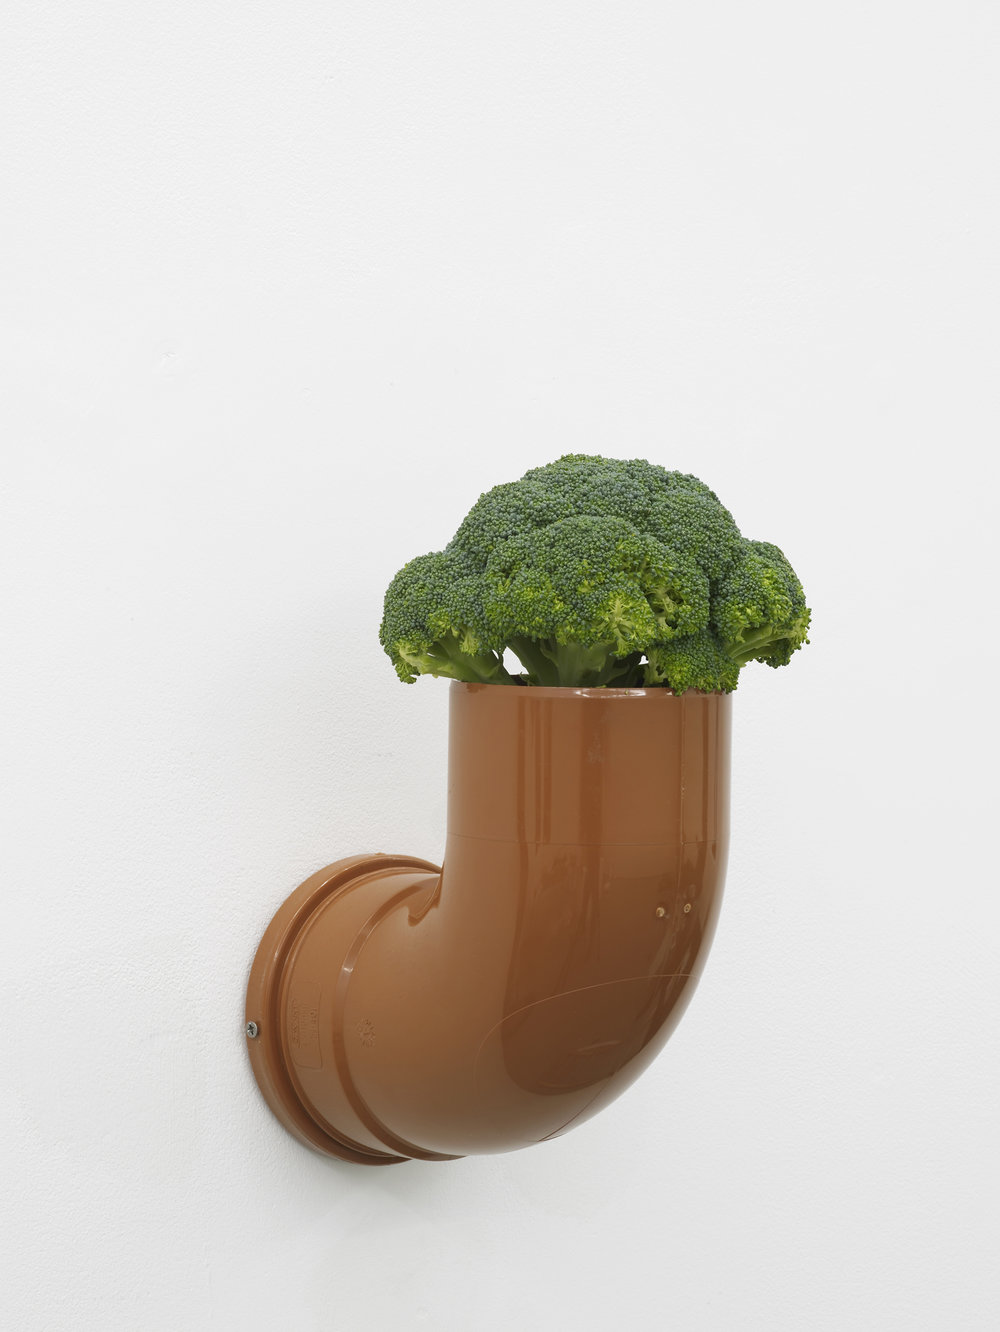 Catachresis ♯69 Head of the broccoli and elbow of the pipe 2016 Found materials 29 x 20 x 25 cm / 11.4 x 7.9 x 9.8 in